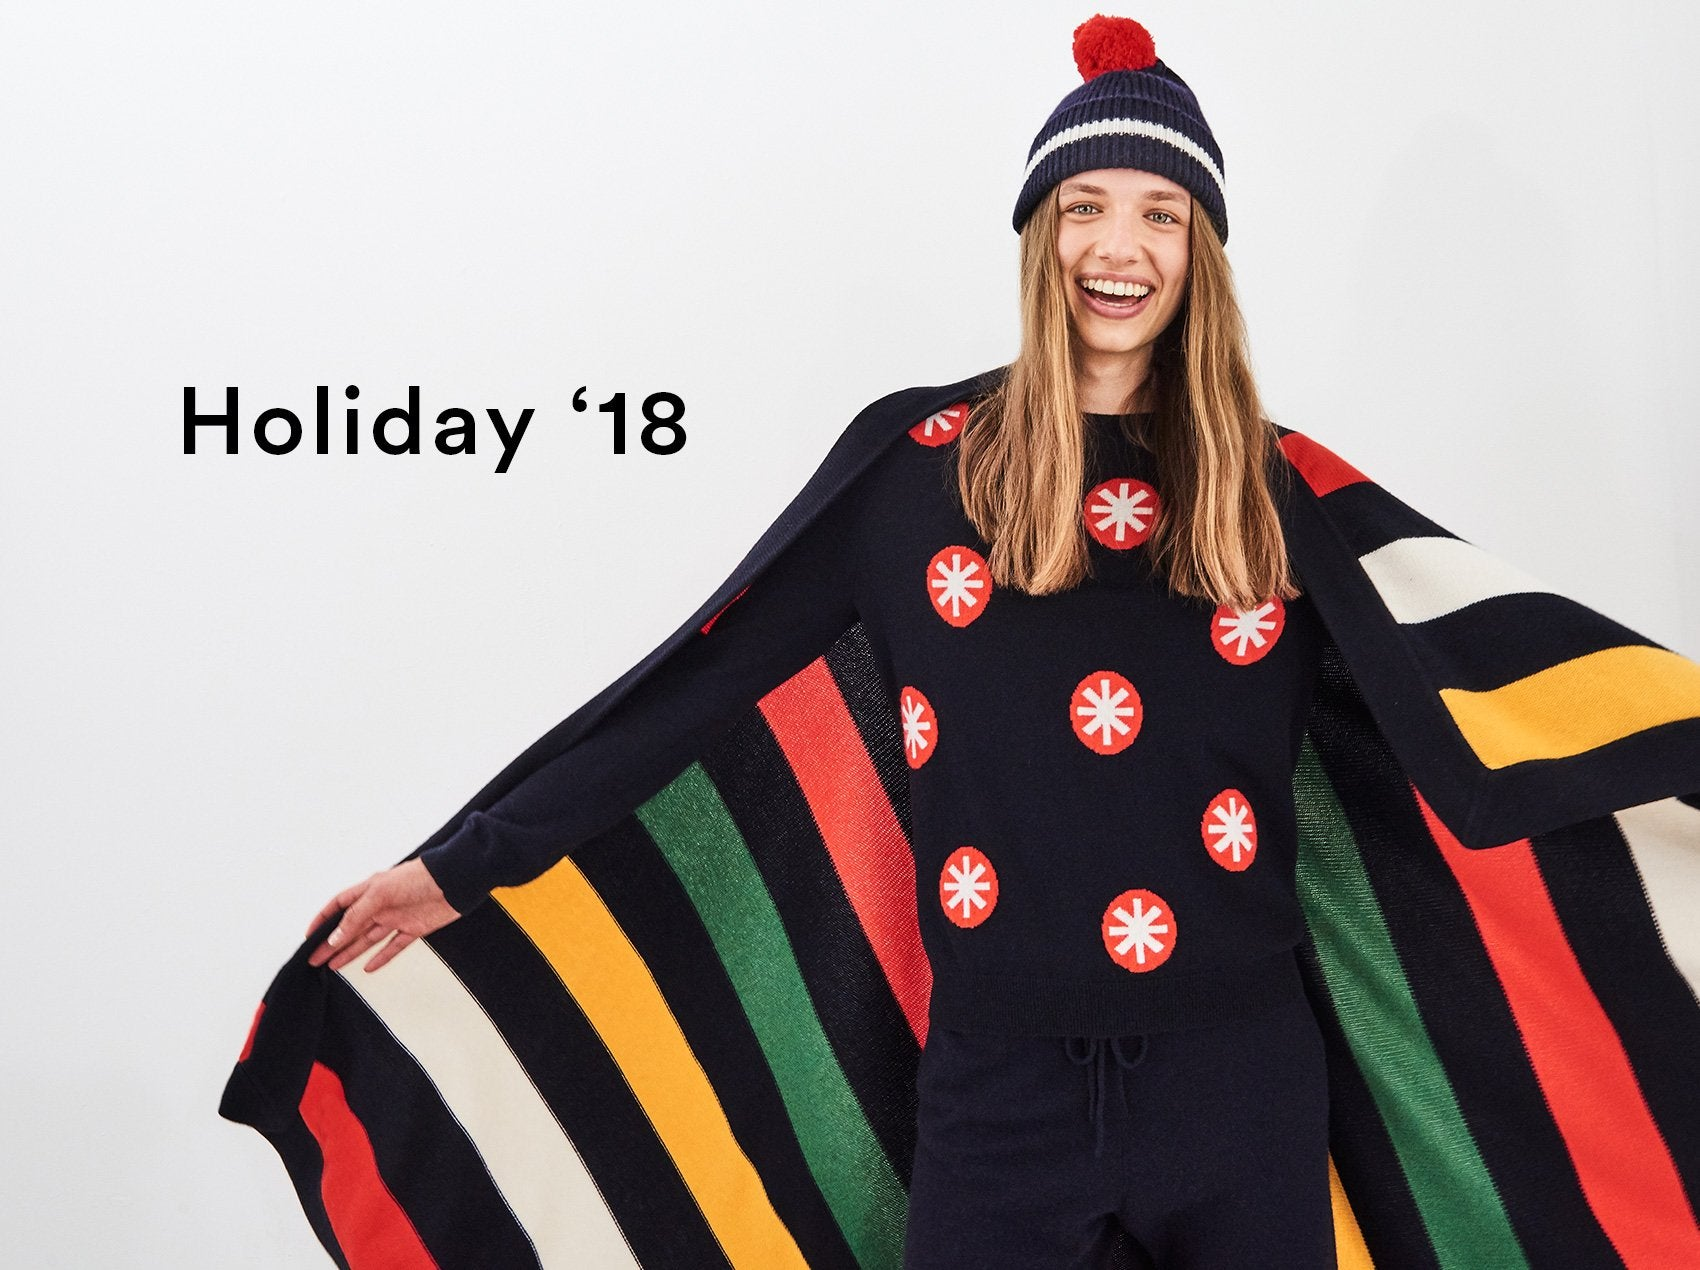 Chinti & Parker Holiday Lookbook